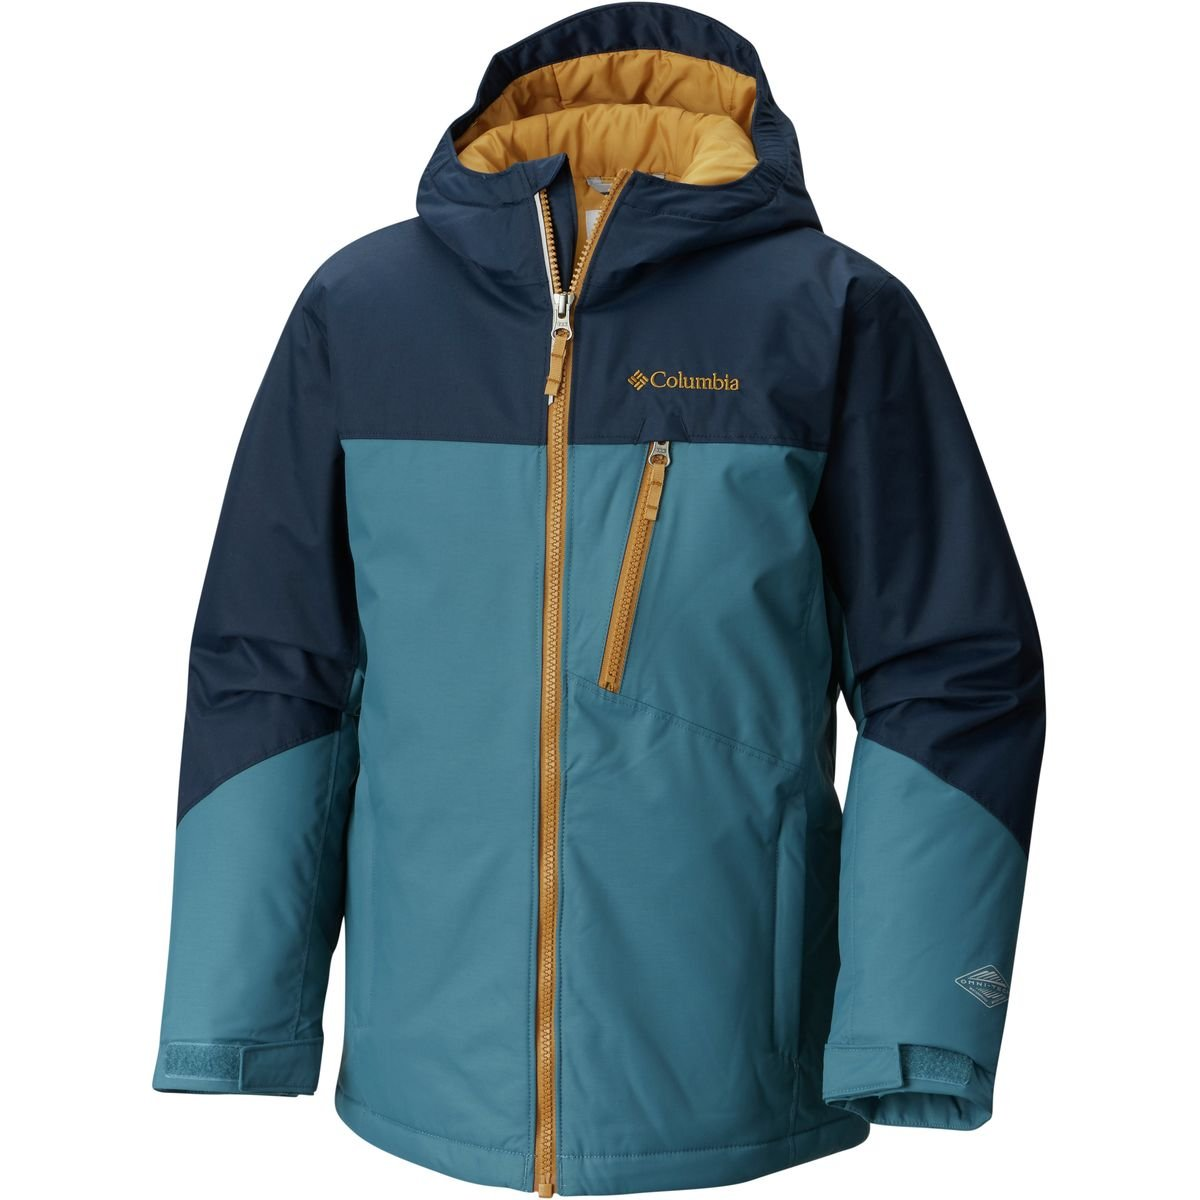 Columbia Boys Double Grab Jacket, Collegiate Navy/Blue Heron, Small